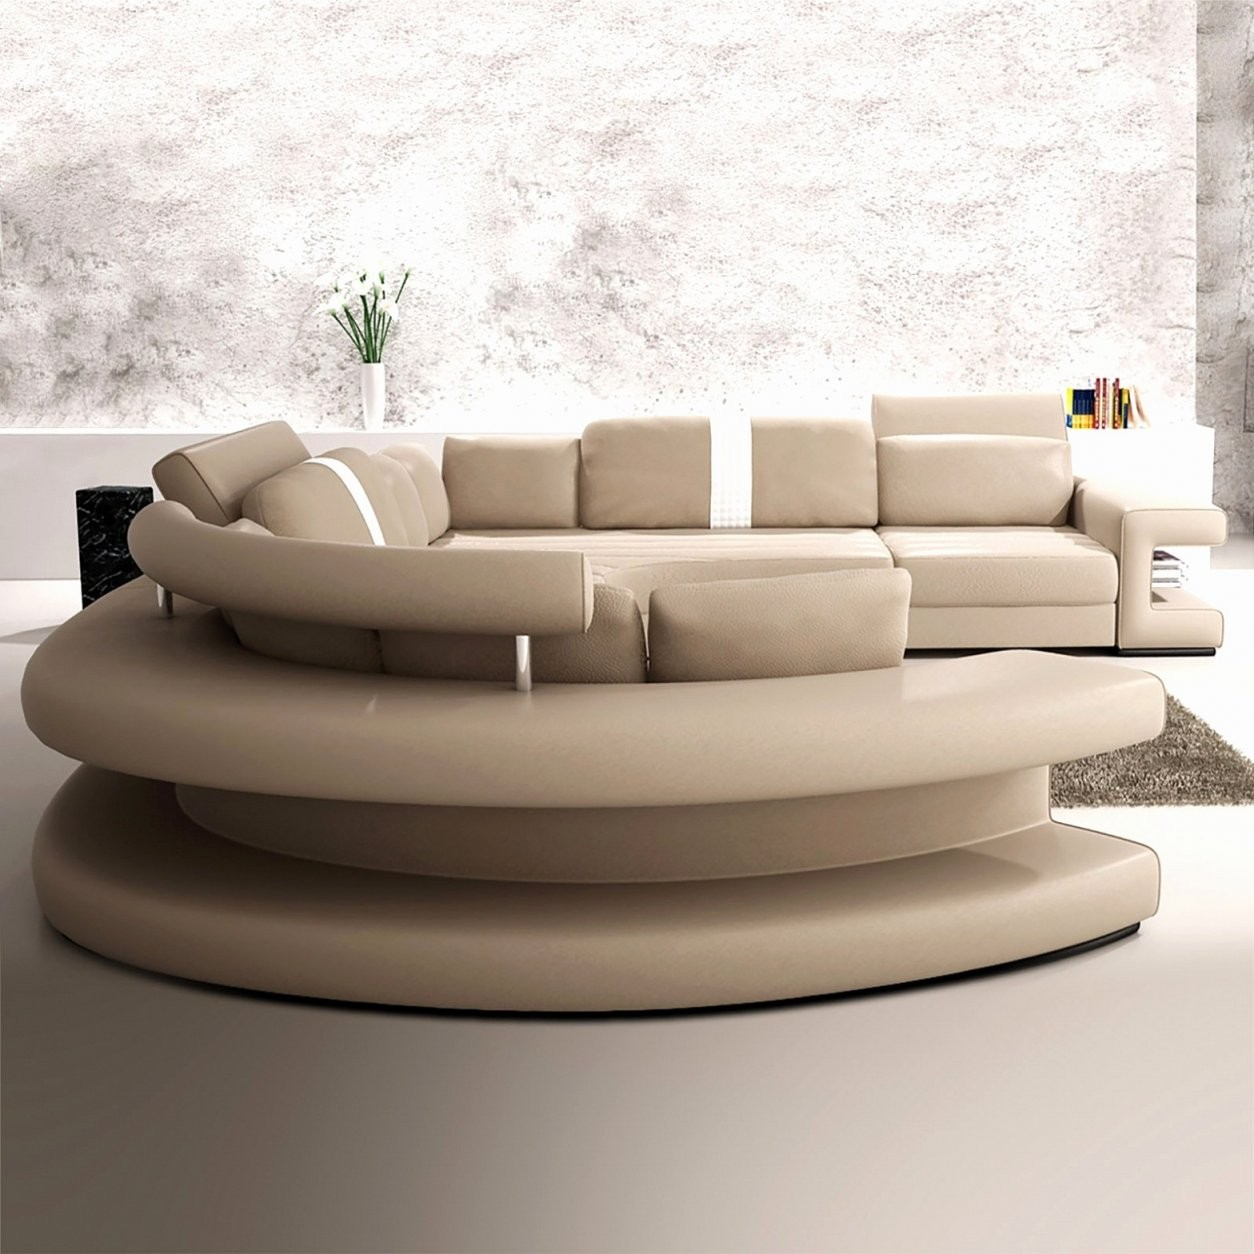 Big Couch Gnstig Big Sofa Vice Mit Led Beleuchtung With Big Couch von Big Sofa Xxl Poco Bild